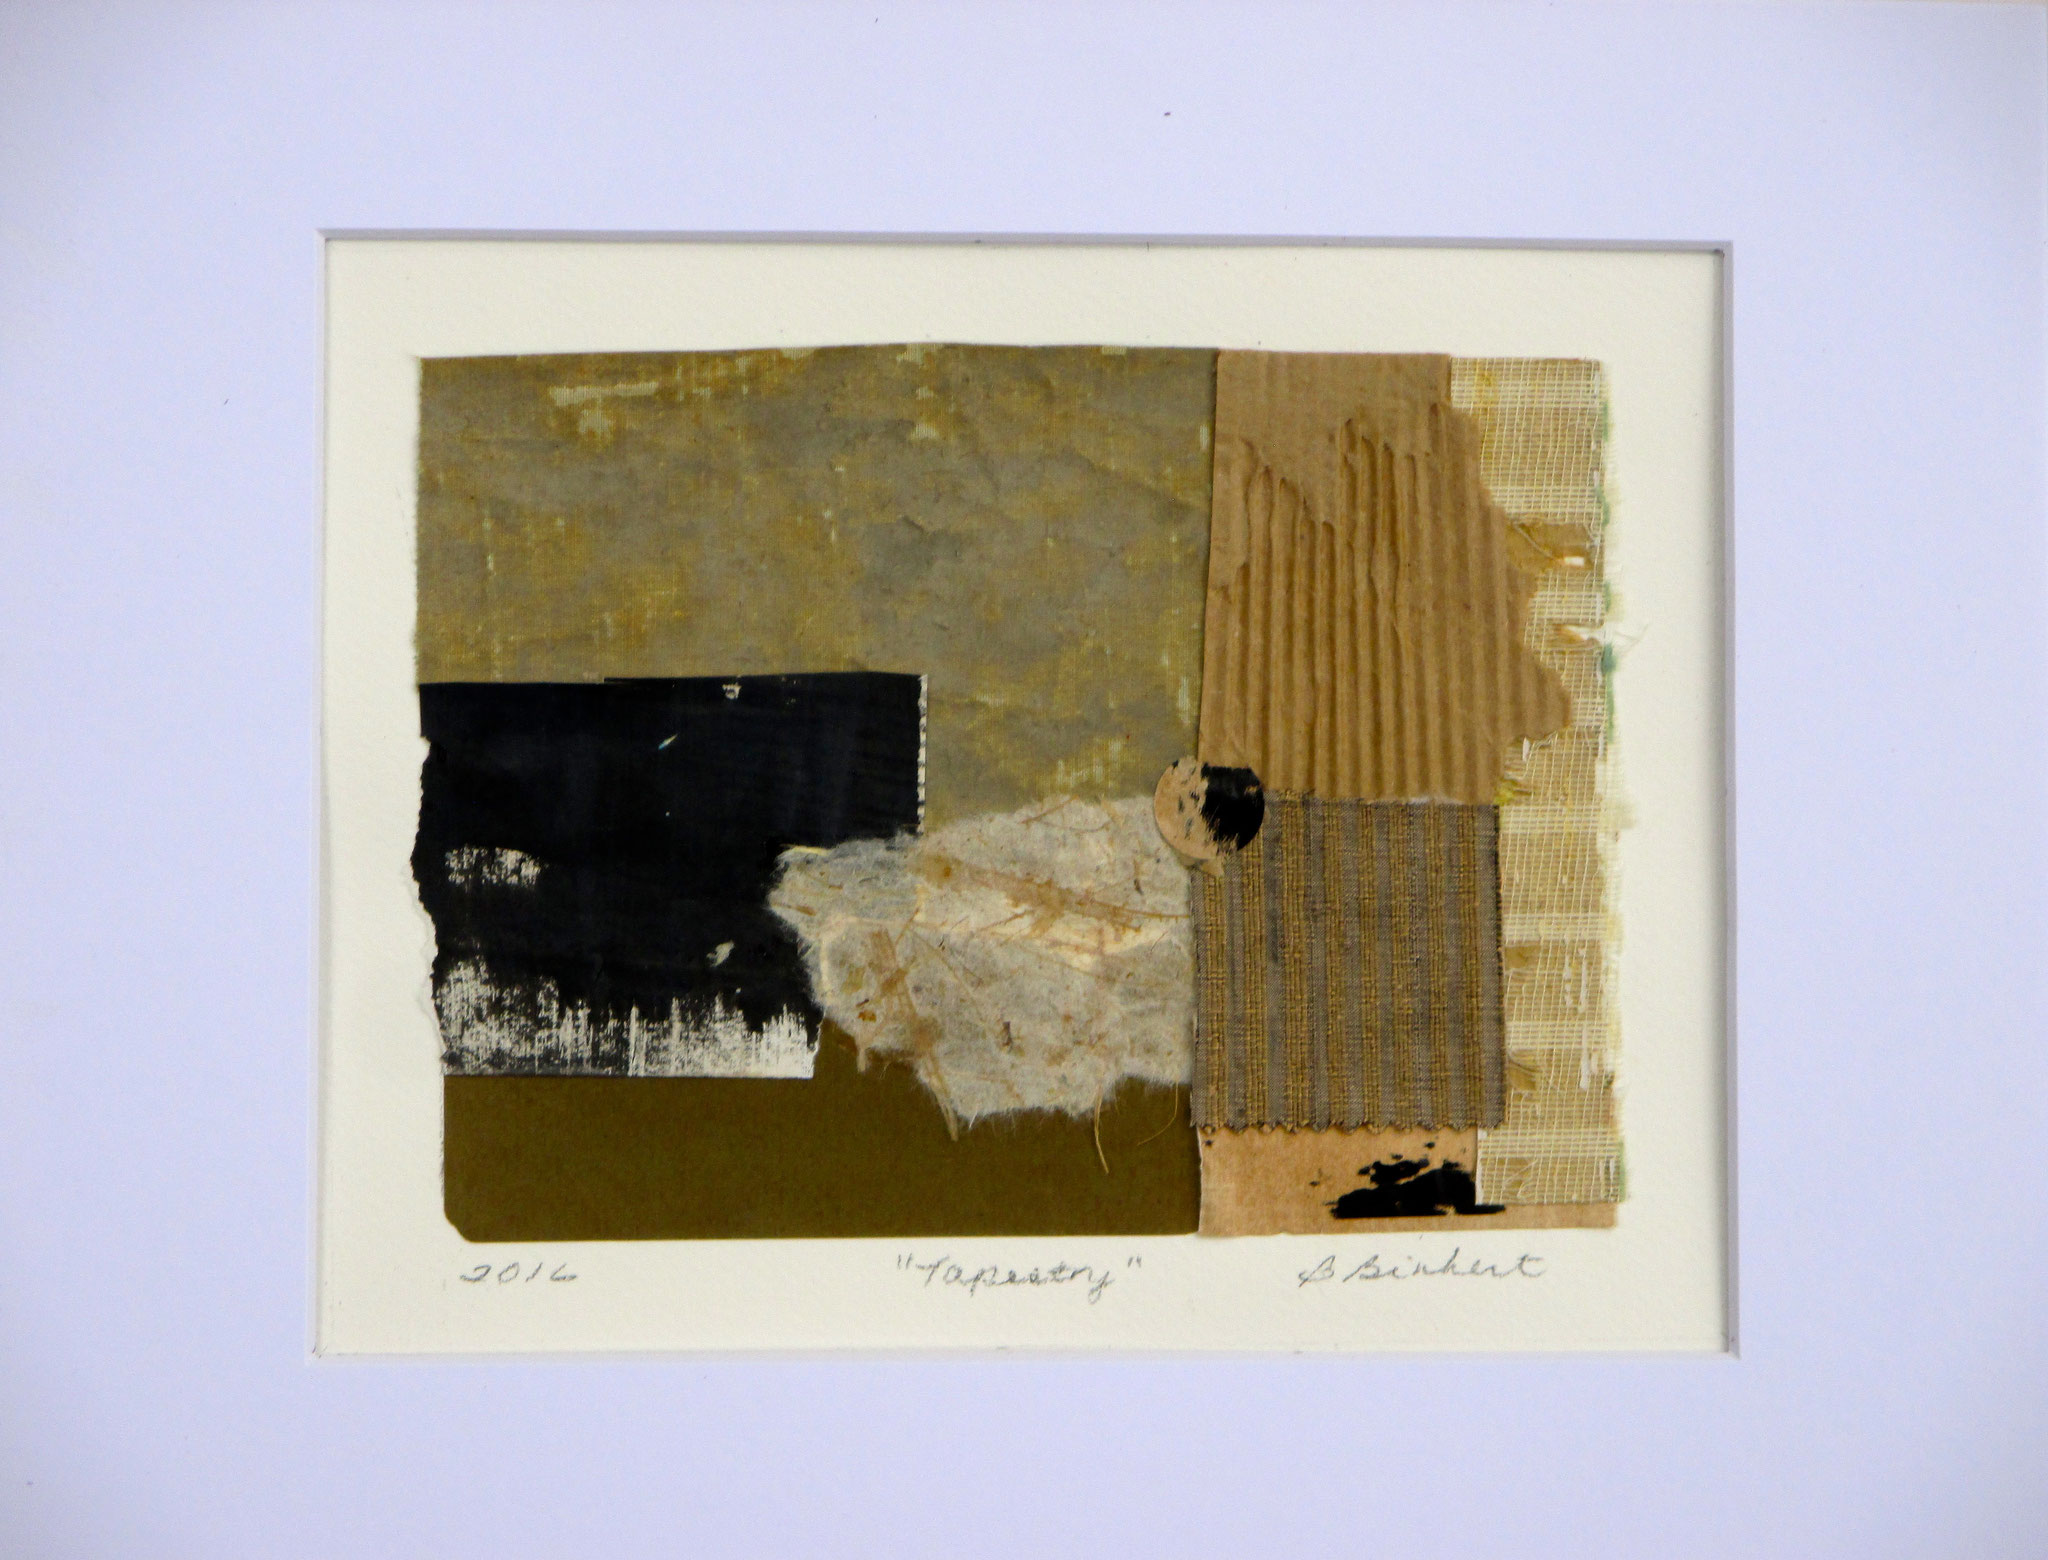 Tapestry, collage on paper, 14 x 11, matted, 2016